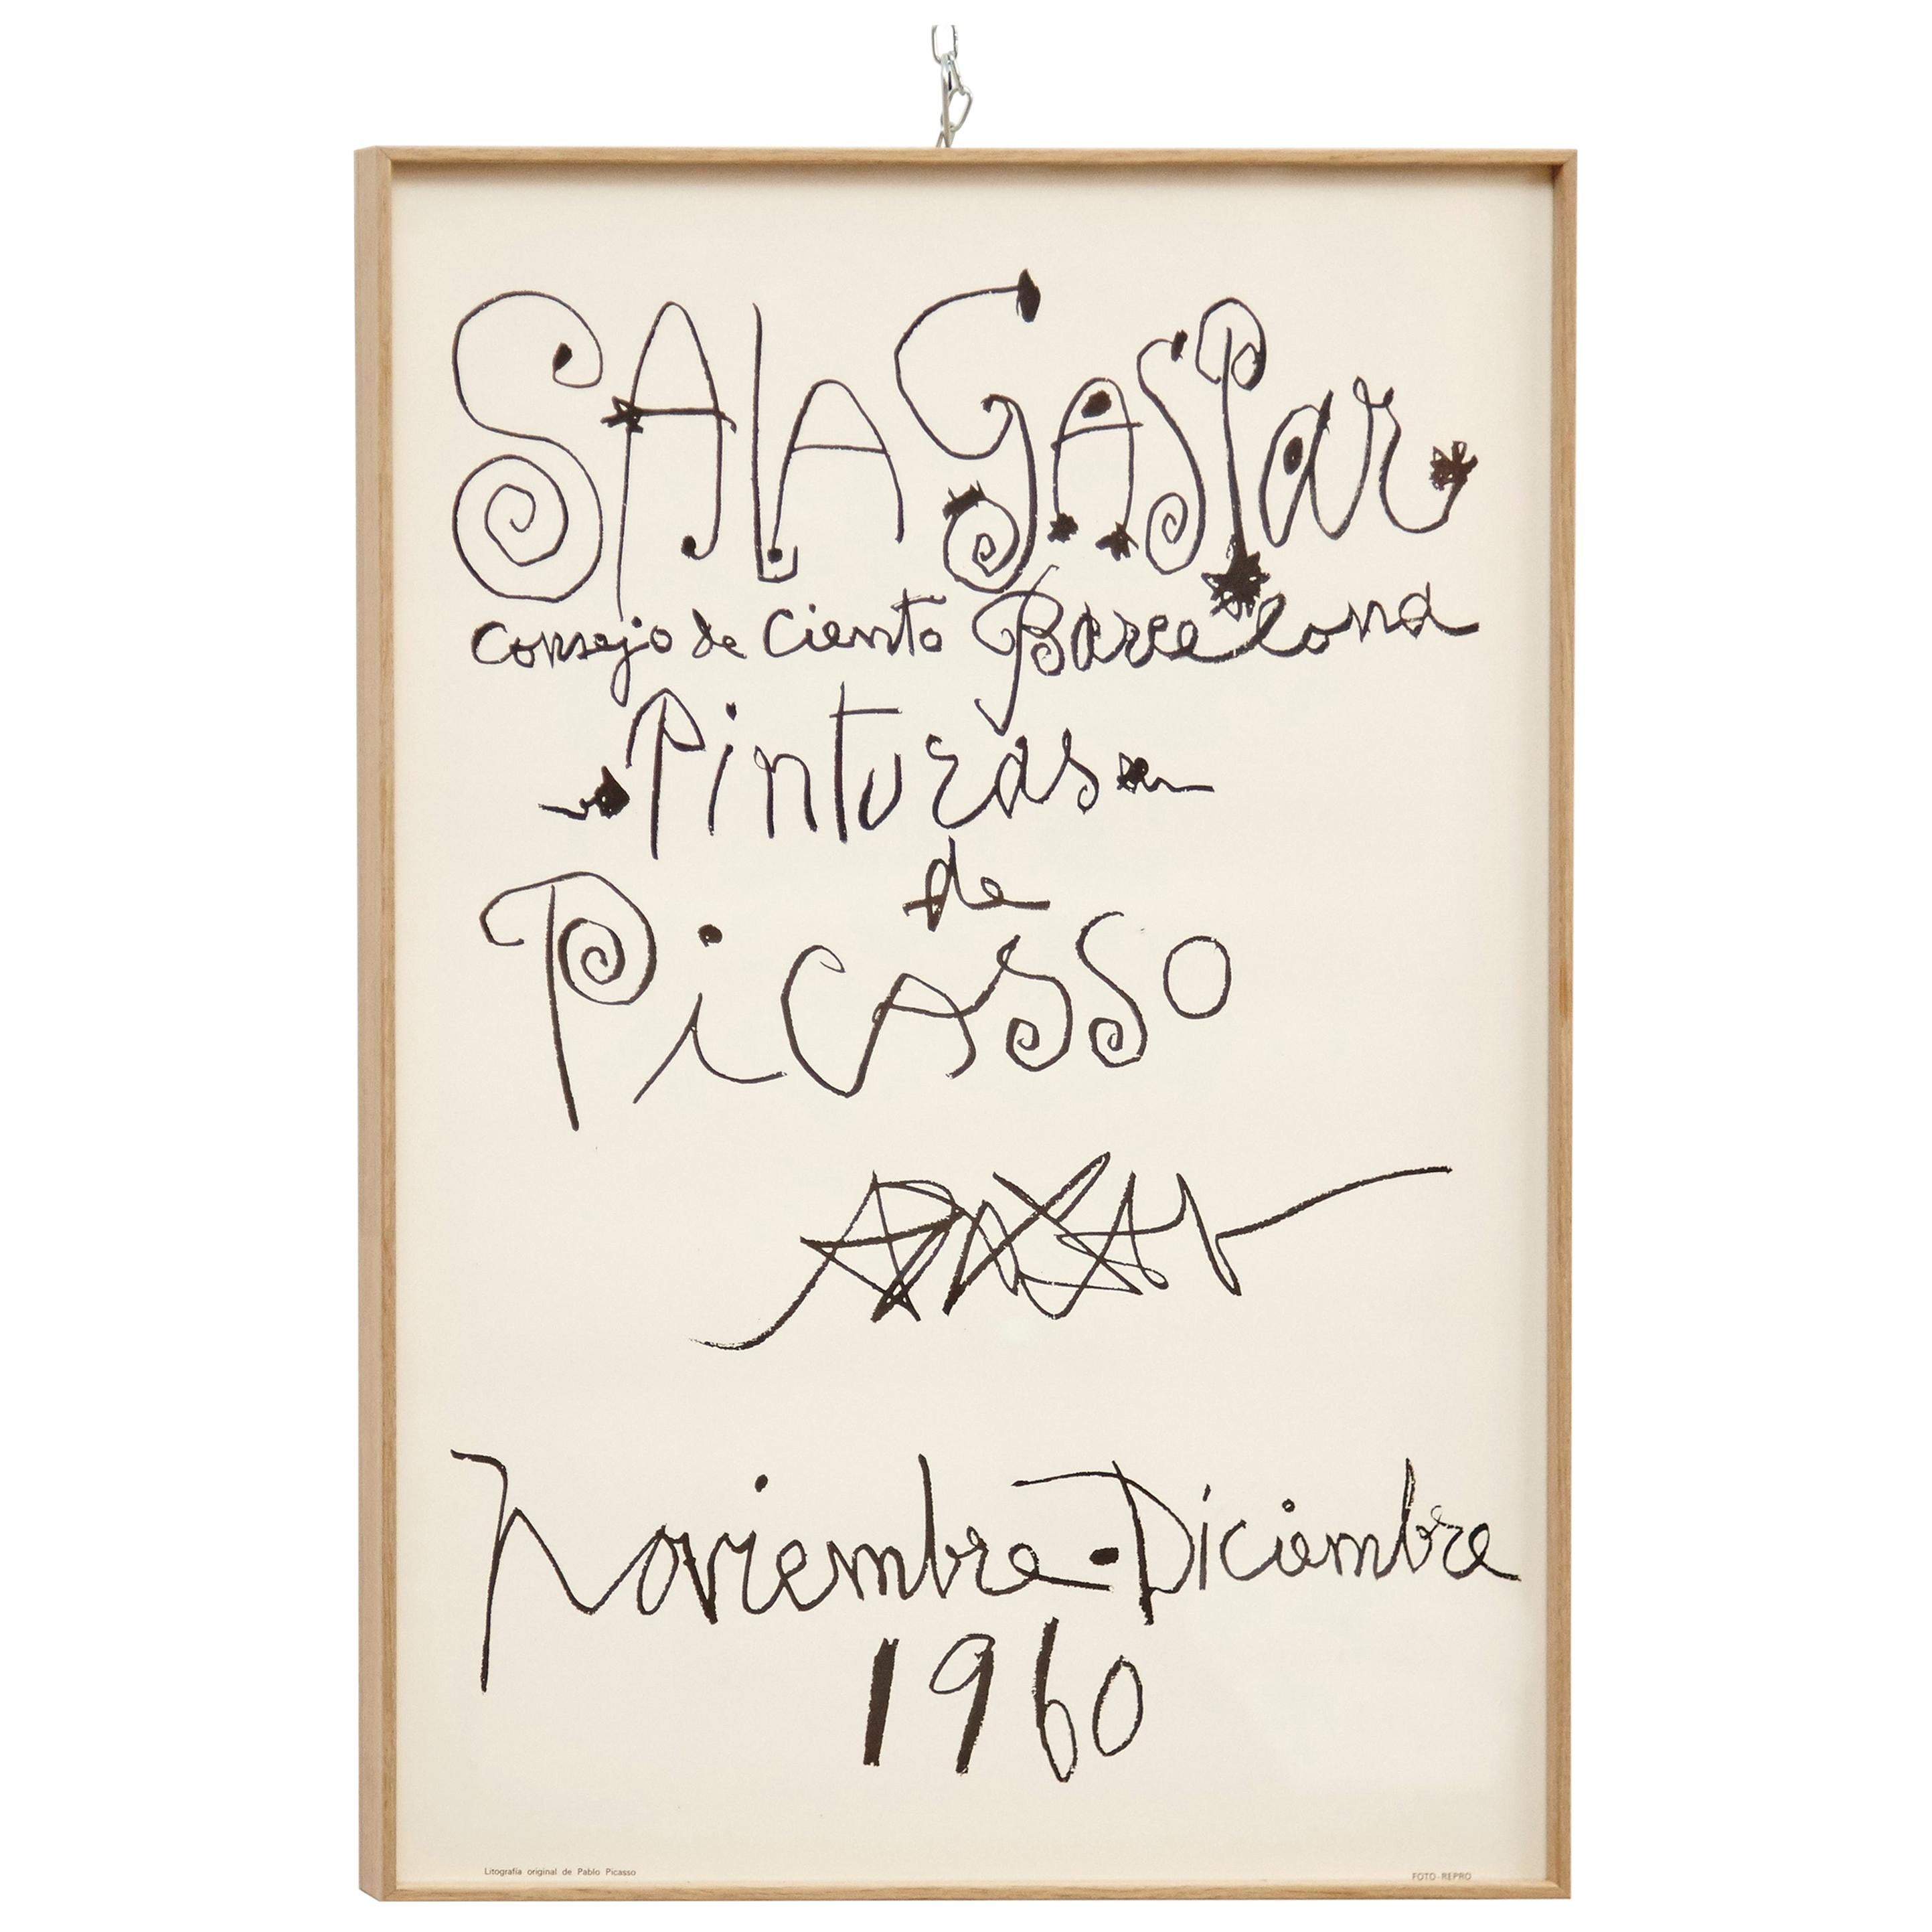 Original Picasso Lithography, Drawings Exhibition, 1960